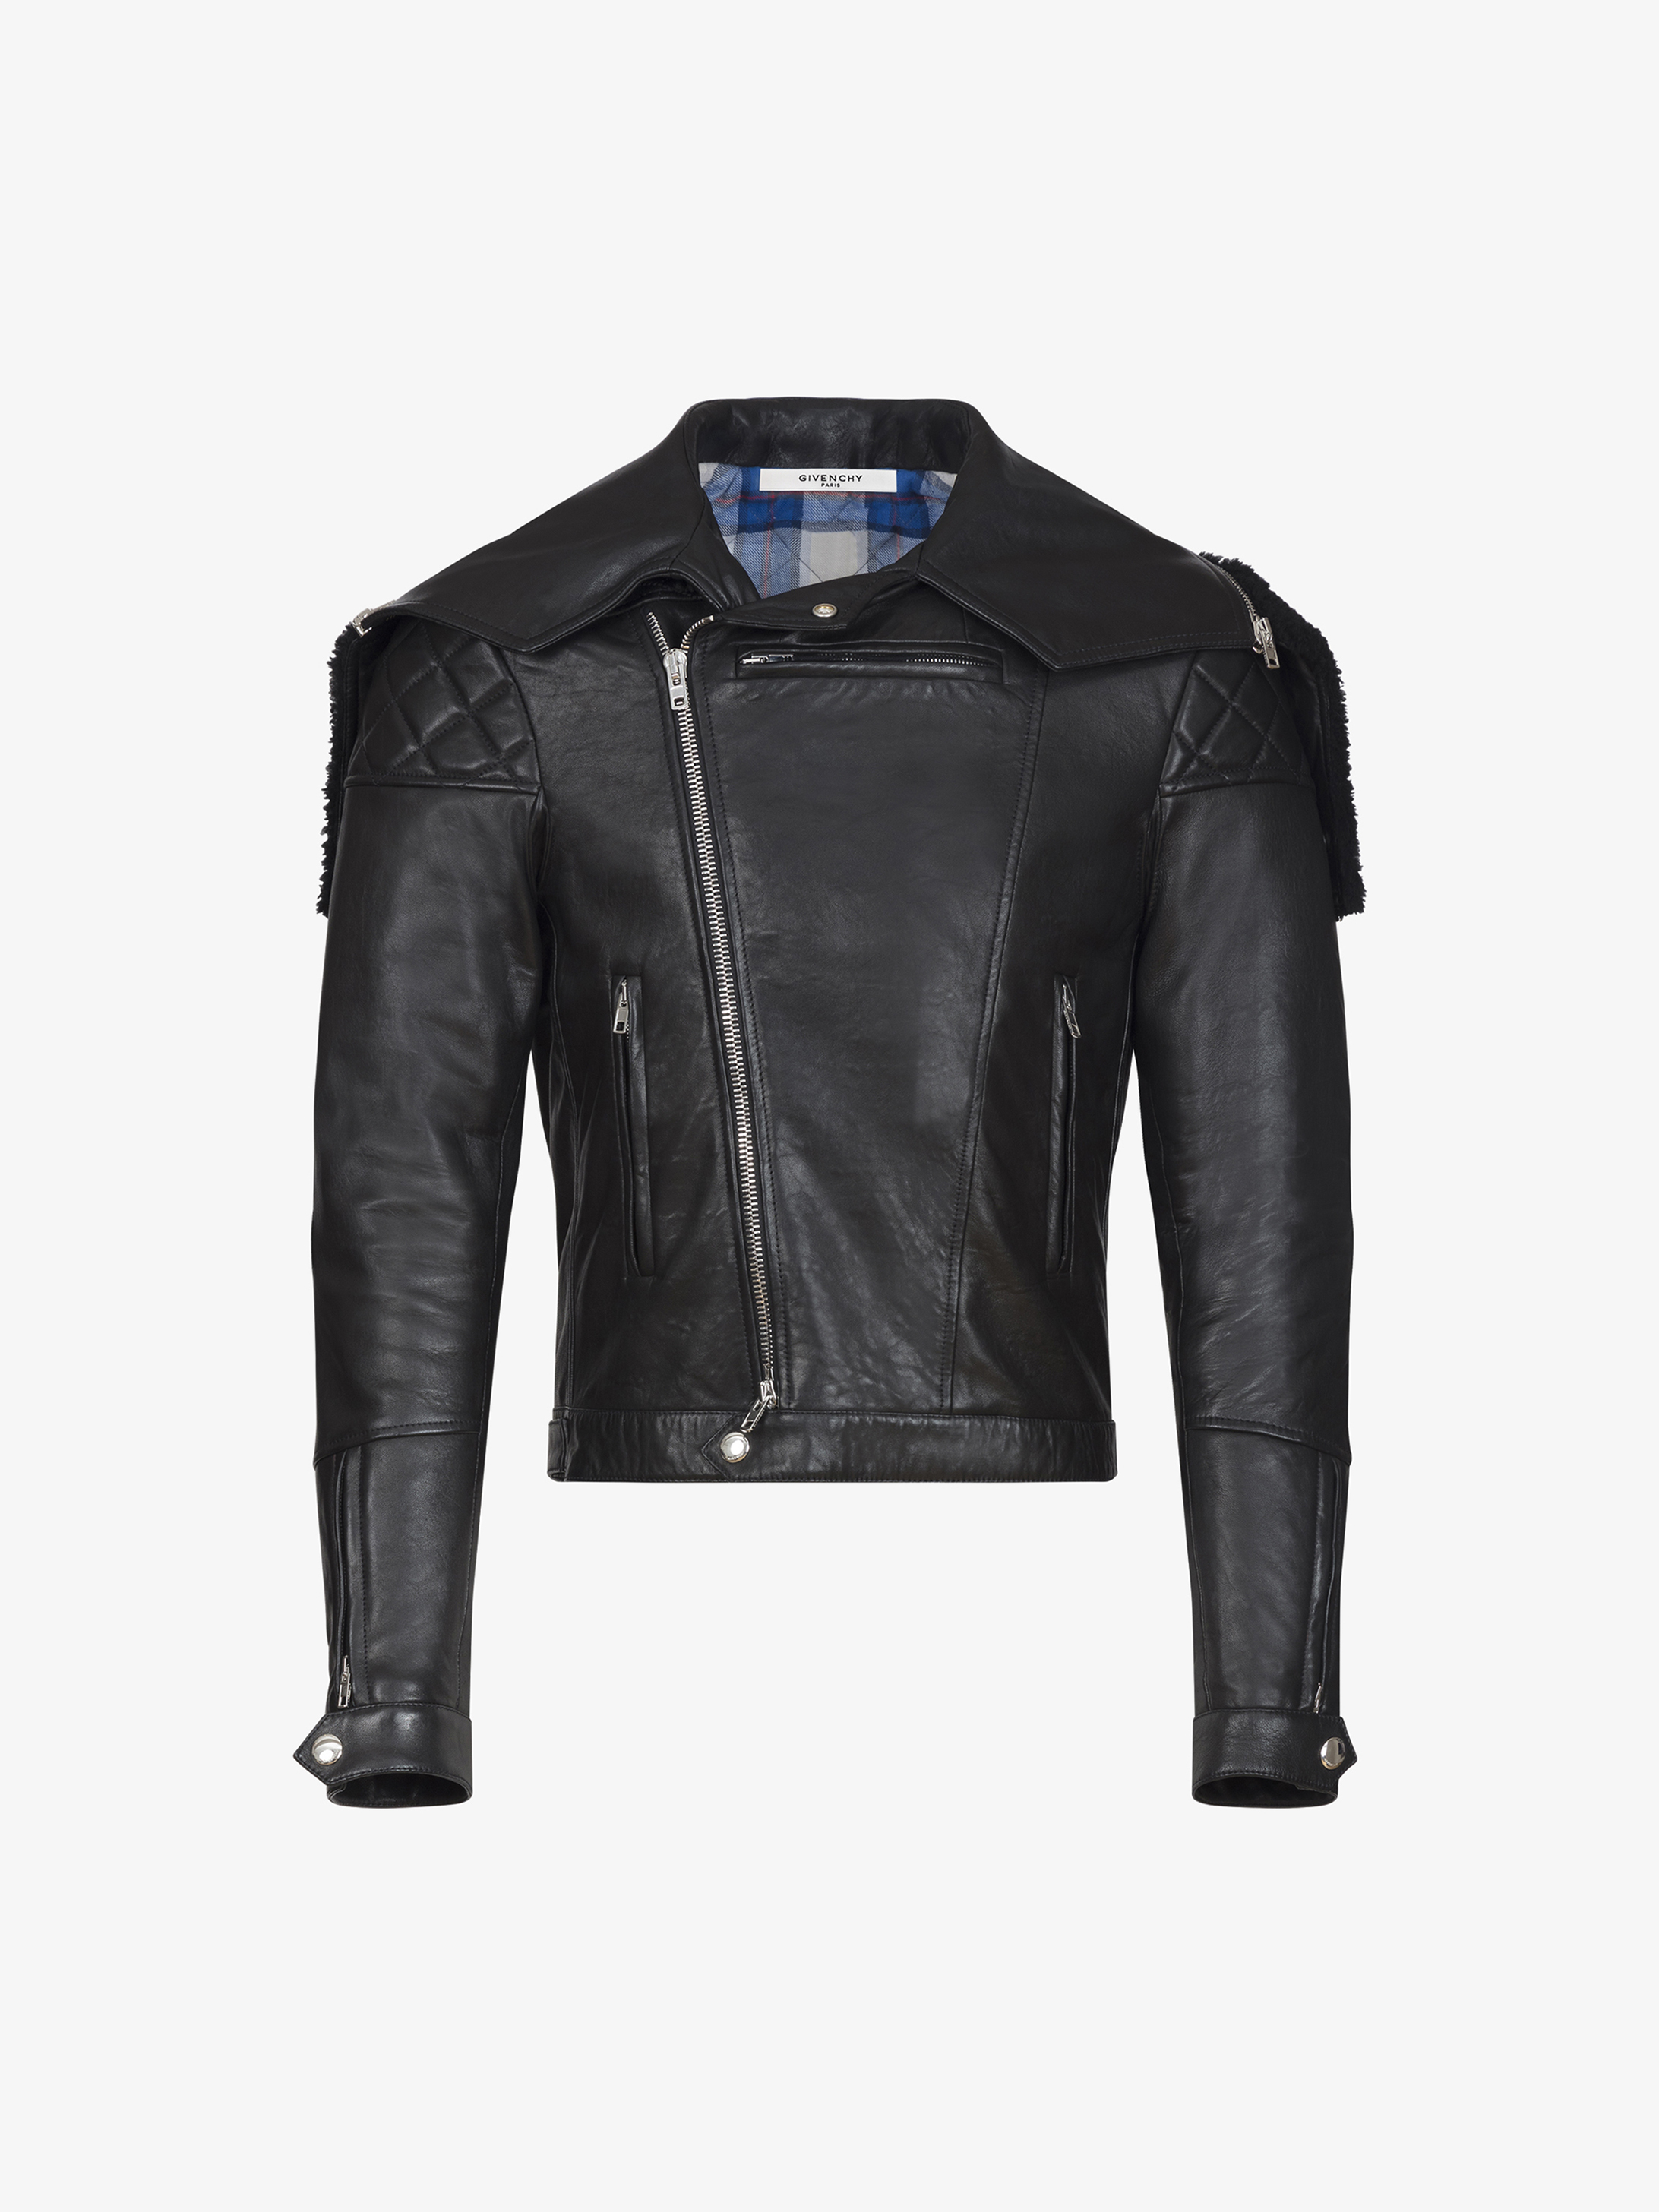 Givenchy Leather jacket with shearling collar | GIVENCHY Paris